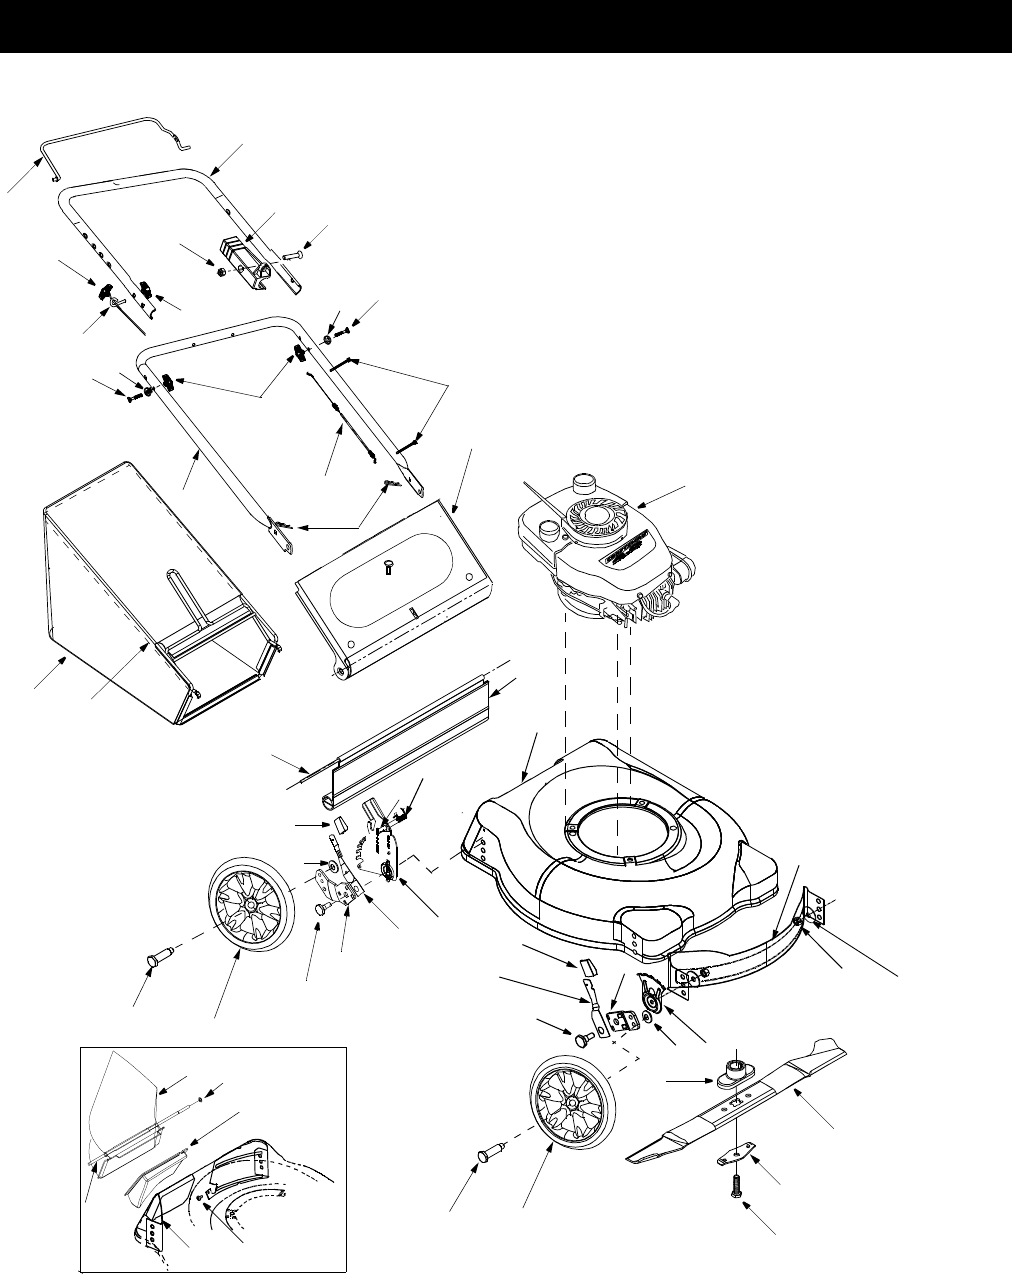 Page 20 of Craftsman Lawn Mower 247.38824 User Guide